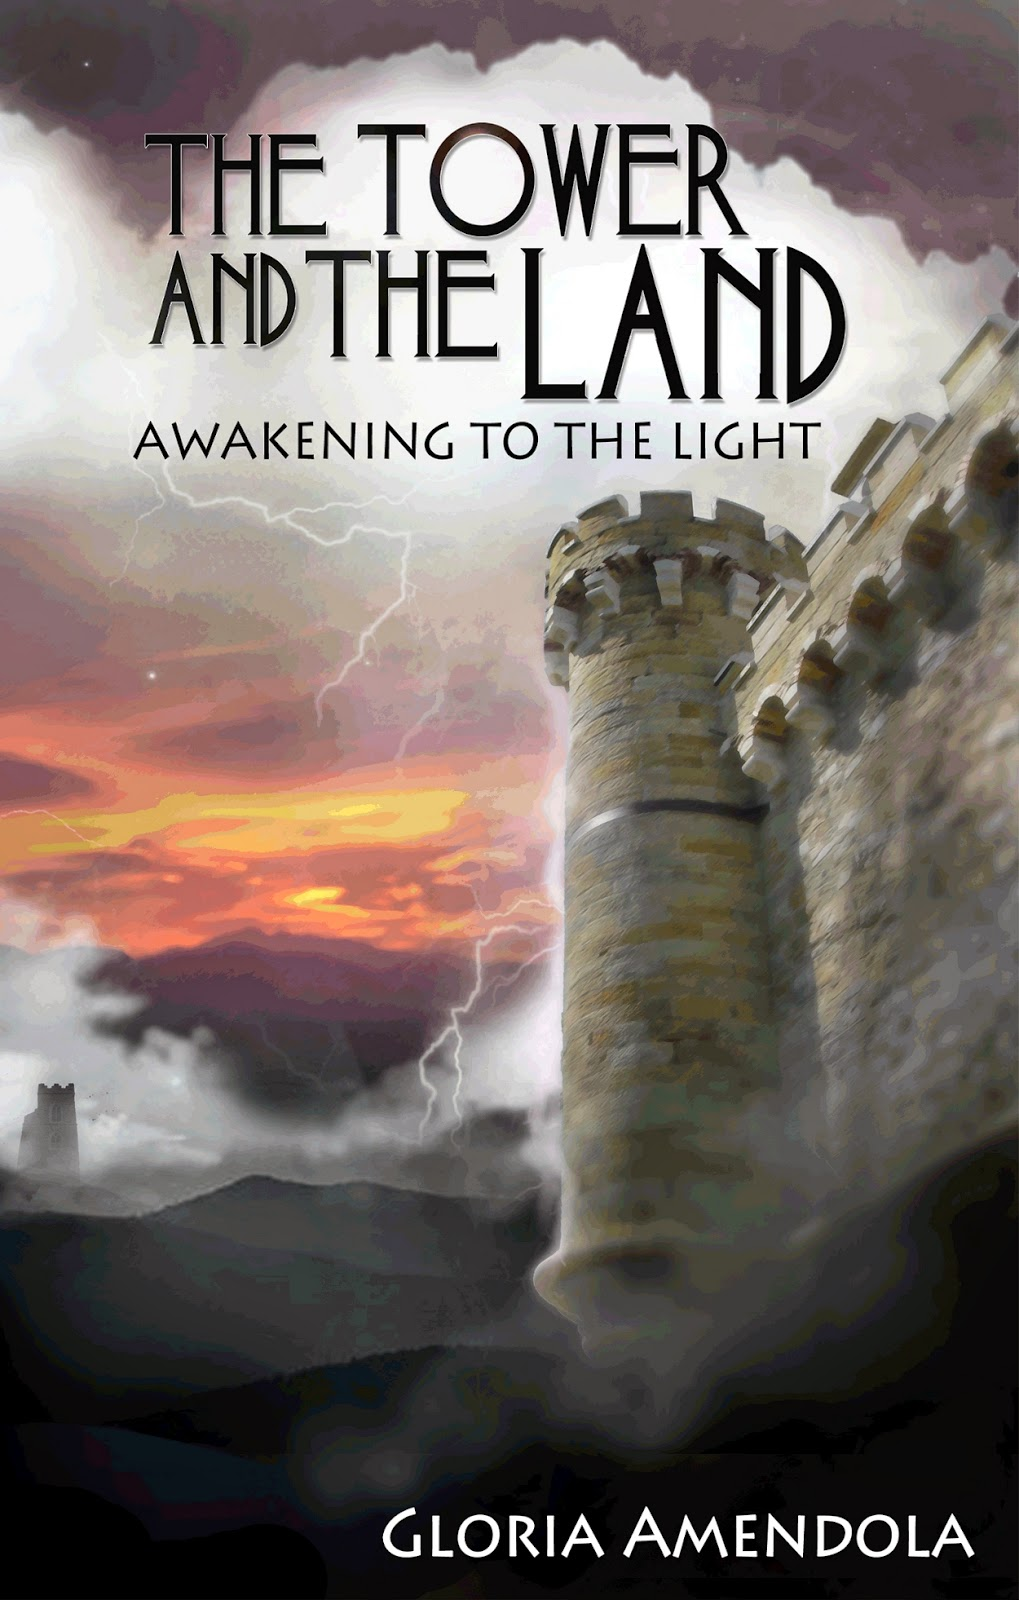 The Tower and the Land: Awakening to the Light by Gloria Amendola